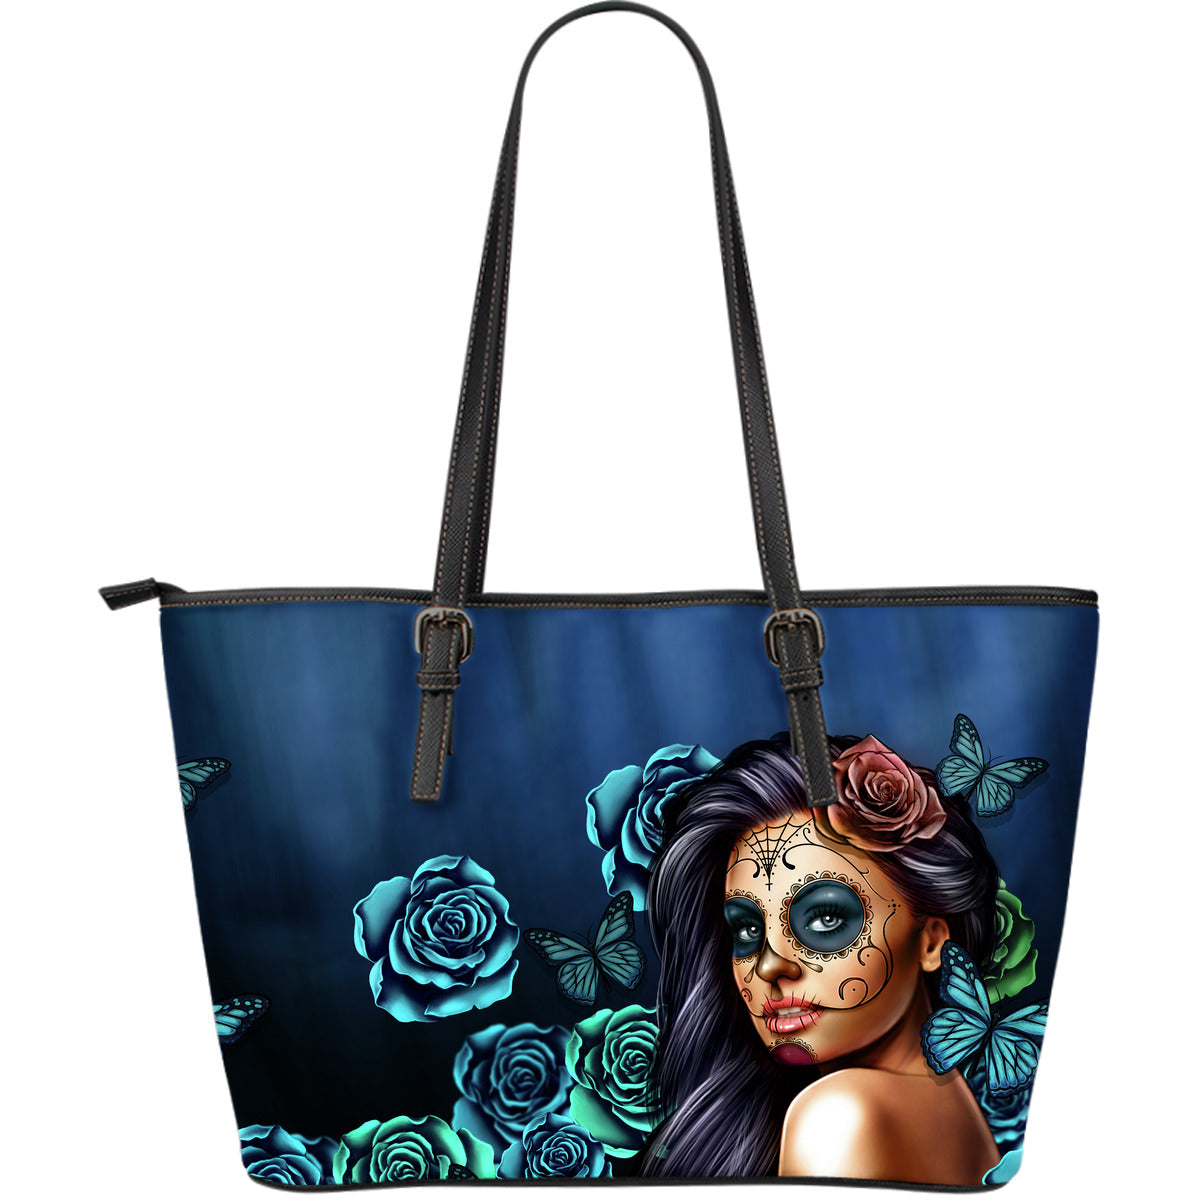 Tattoo Calavera Girl Large Leather Tote Bag - Collection 1